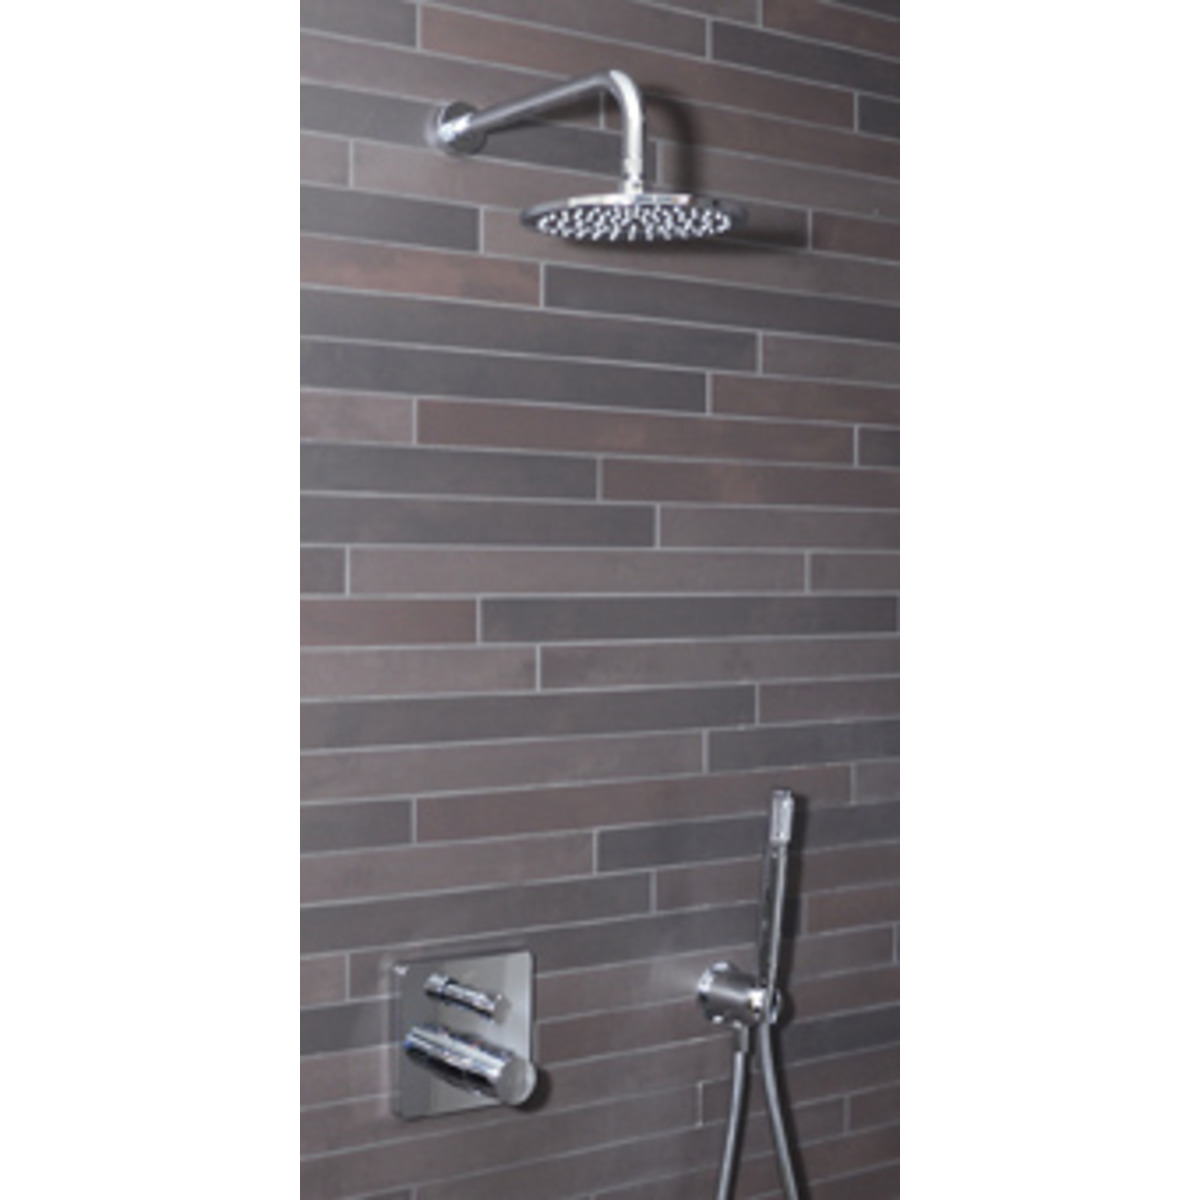 ideal standard showerpack ceratherm 200 inbouwkraan thermostatisch met afbouwdeel met. Black Bedroom Furniture Sets. Home Design Ideas